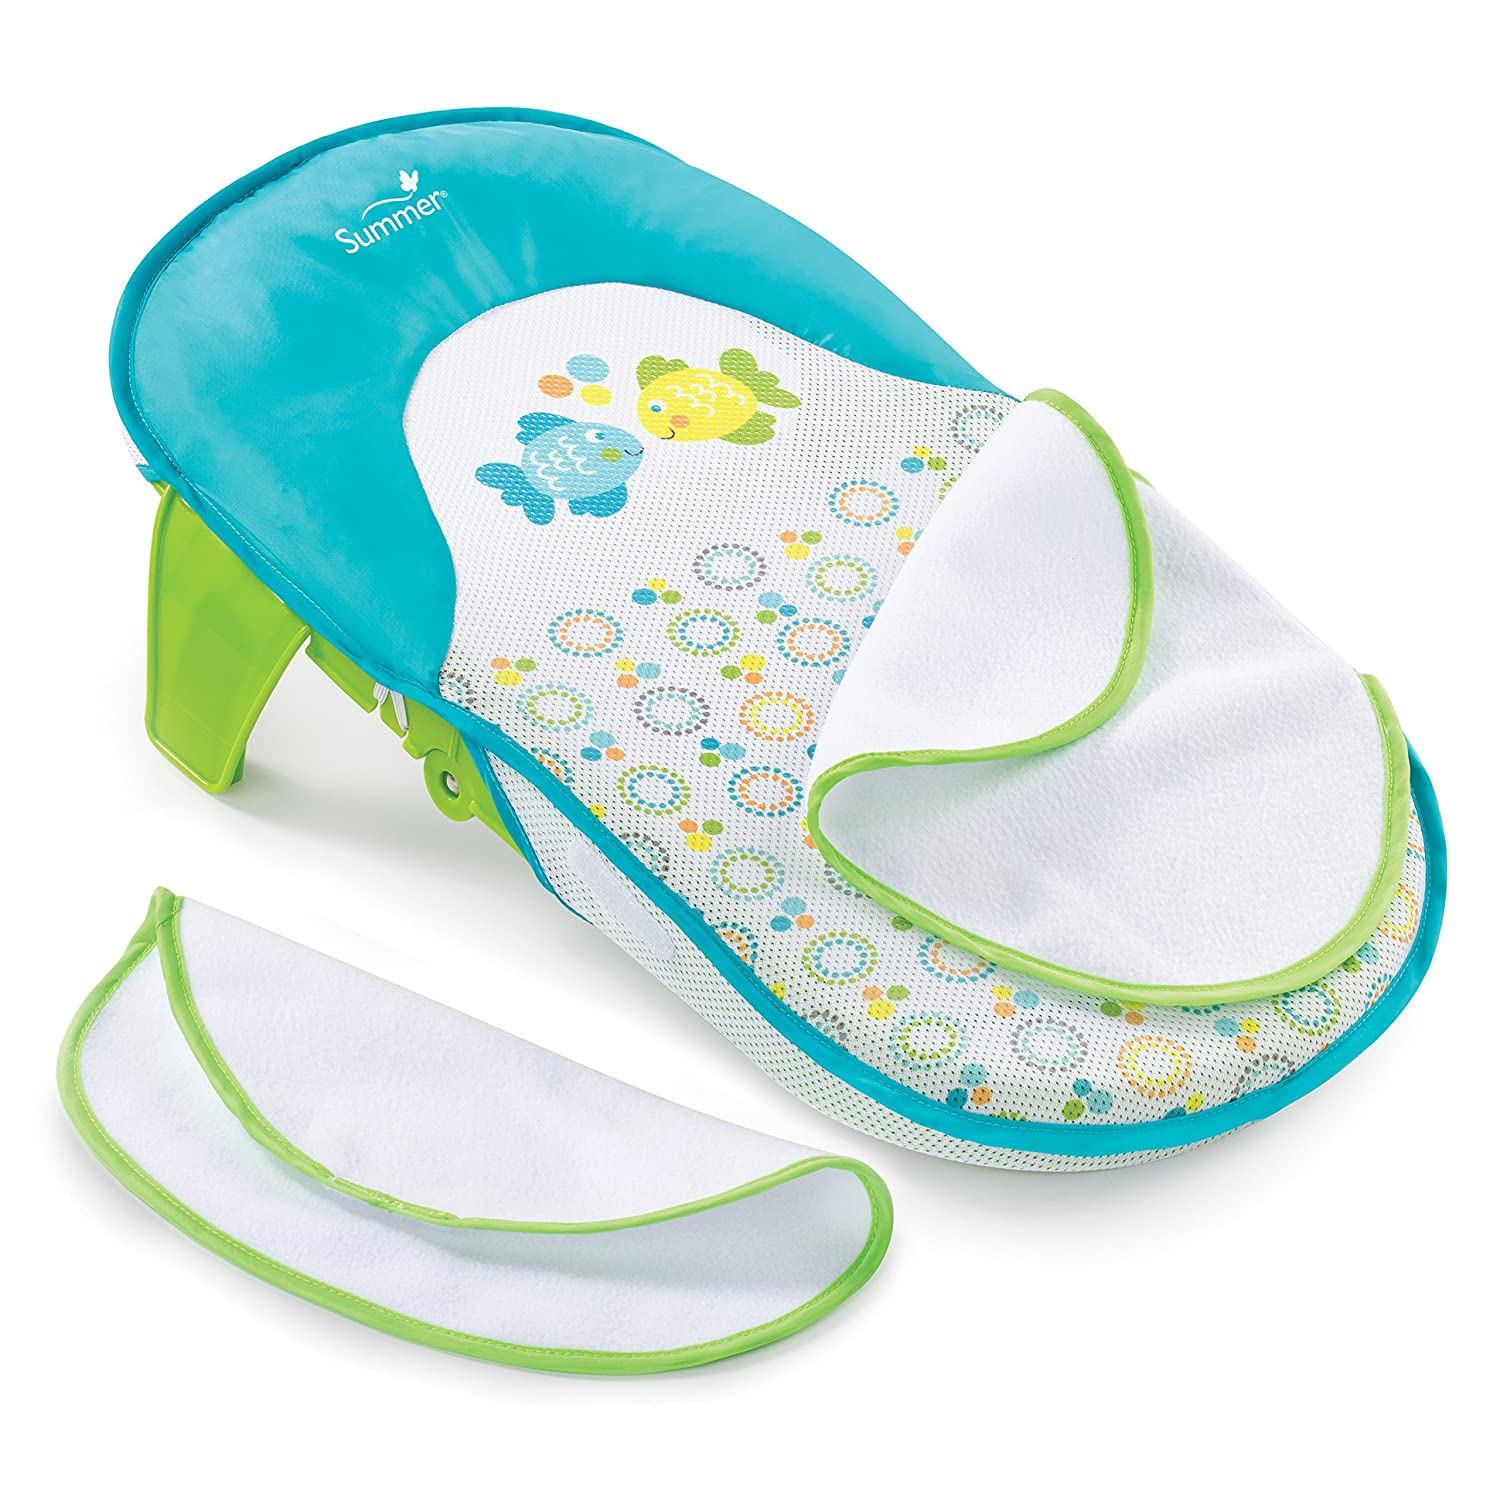 Finally popular brand Summer Bath Max 55% OFF Sling Warming with Wings